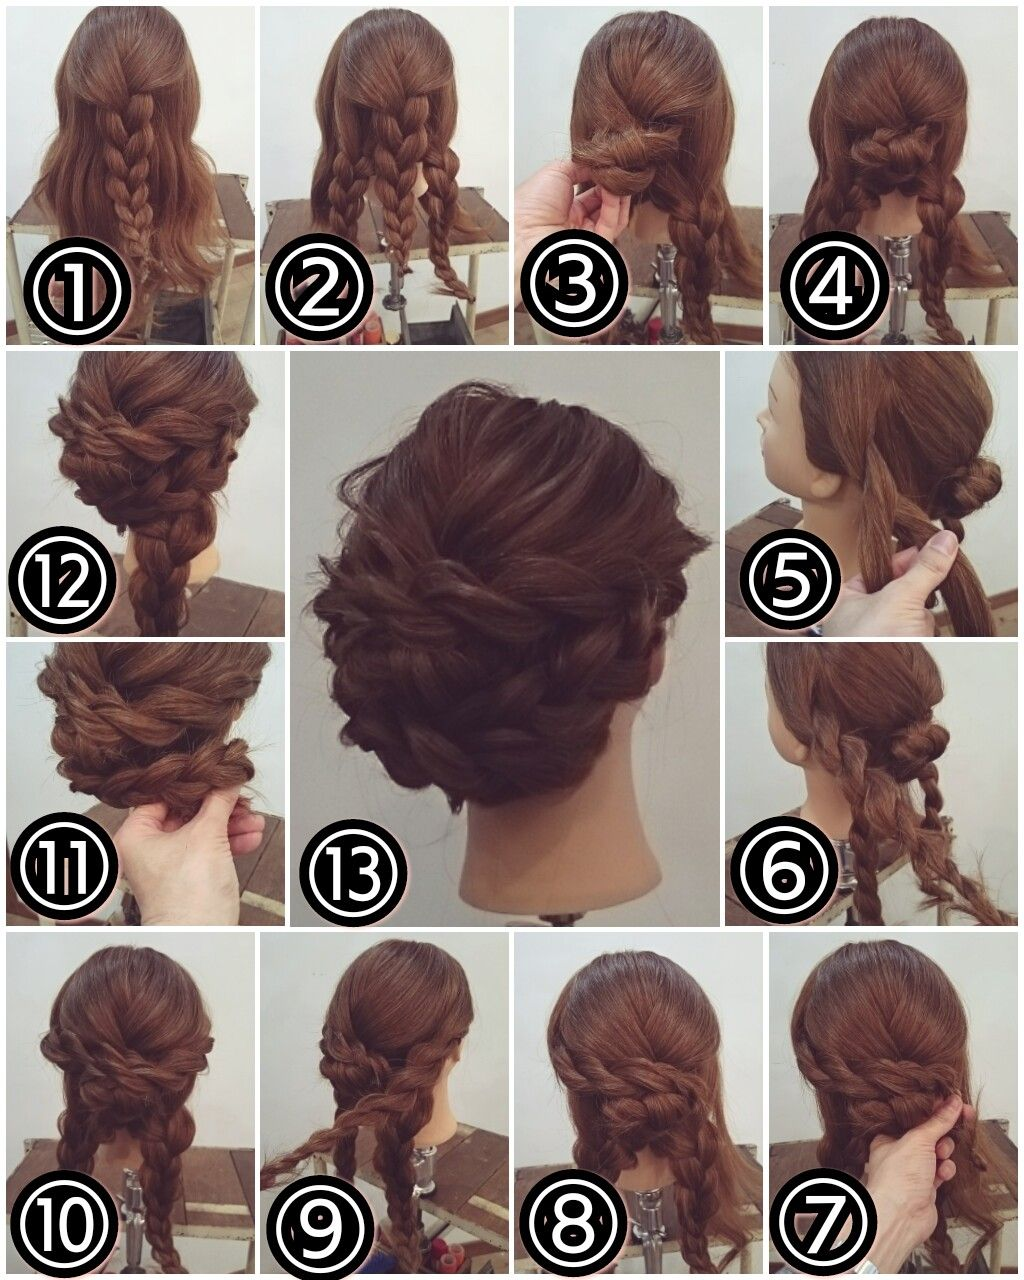 Afloyd peinados pinterest hair style updos and updo